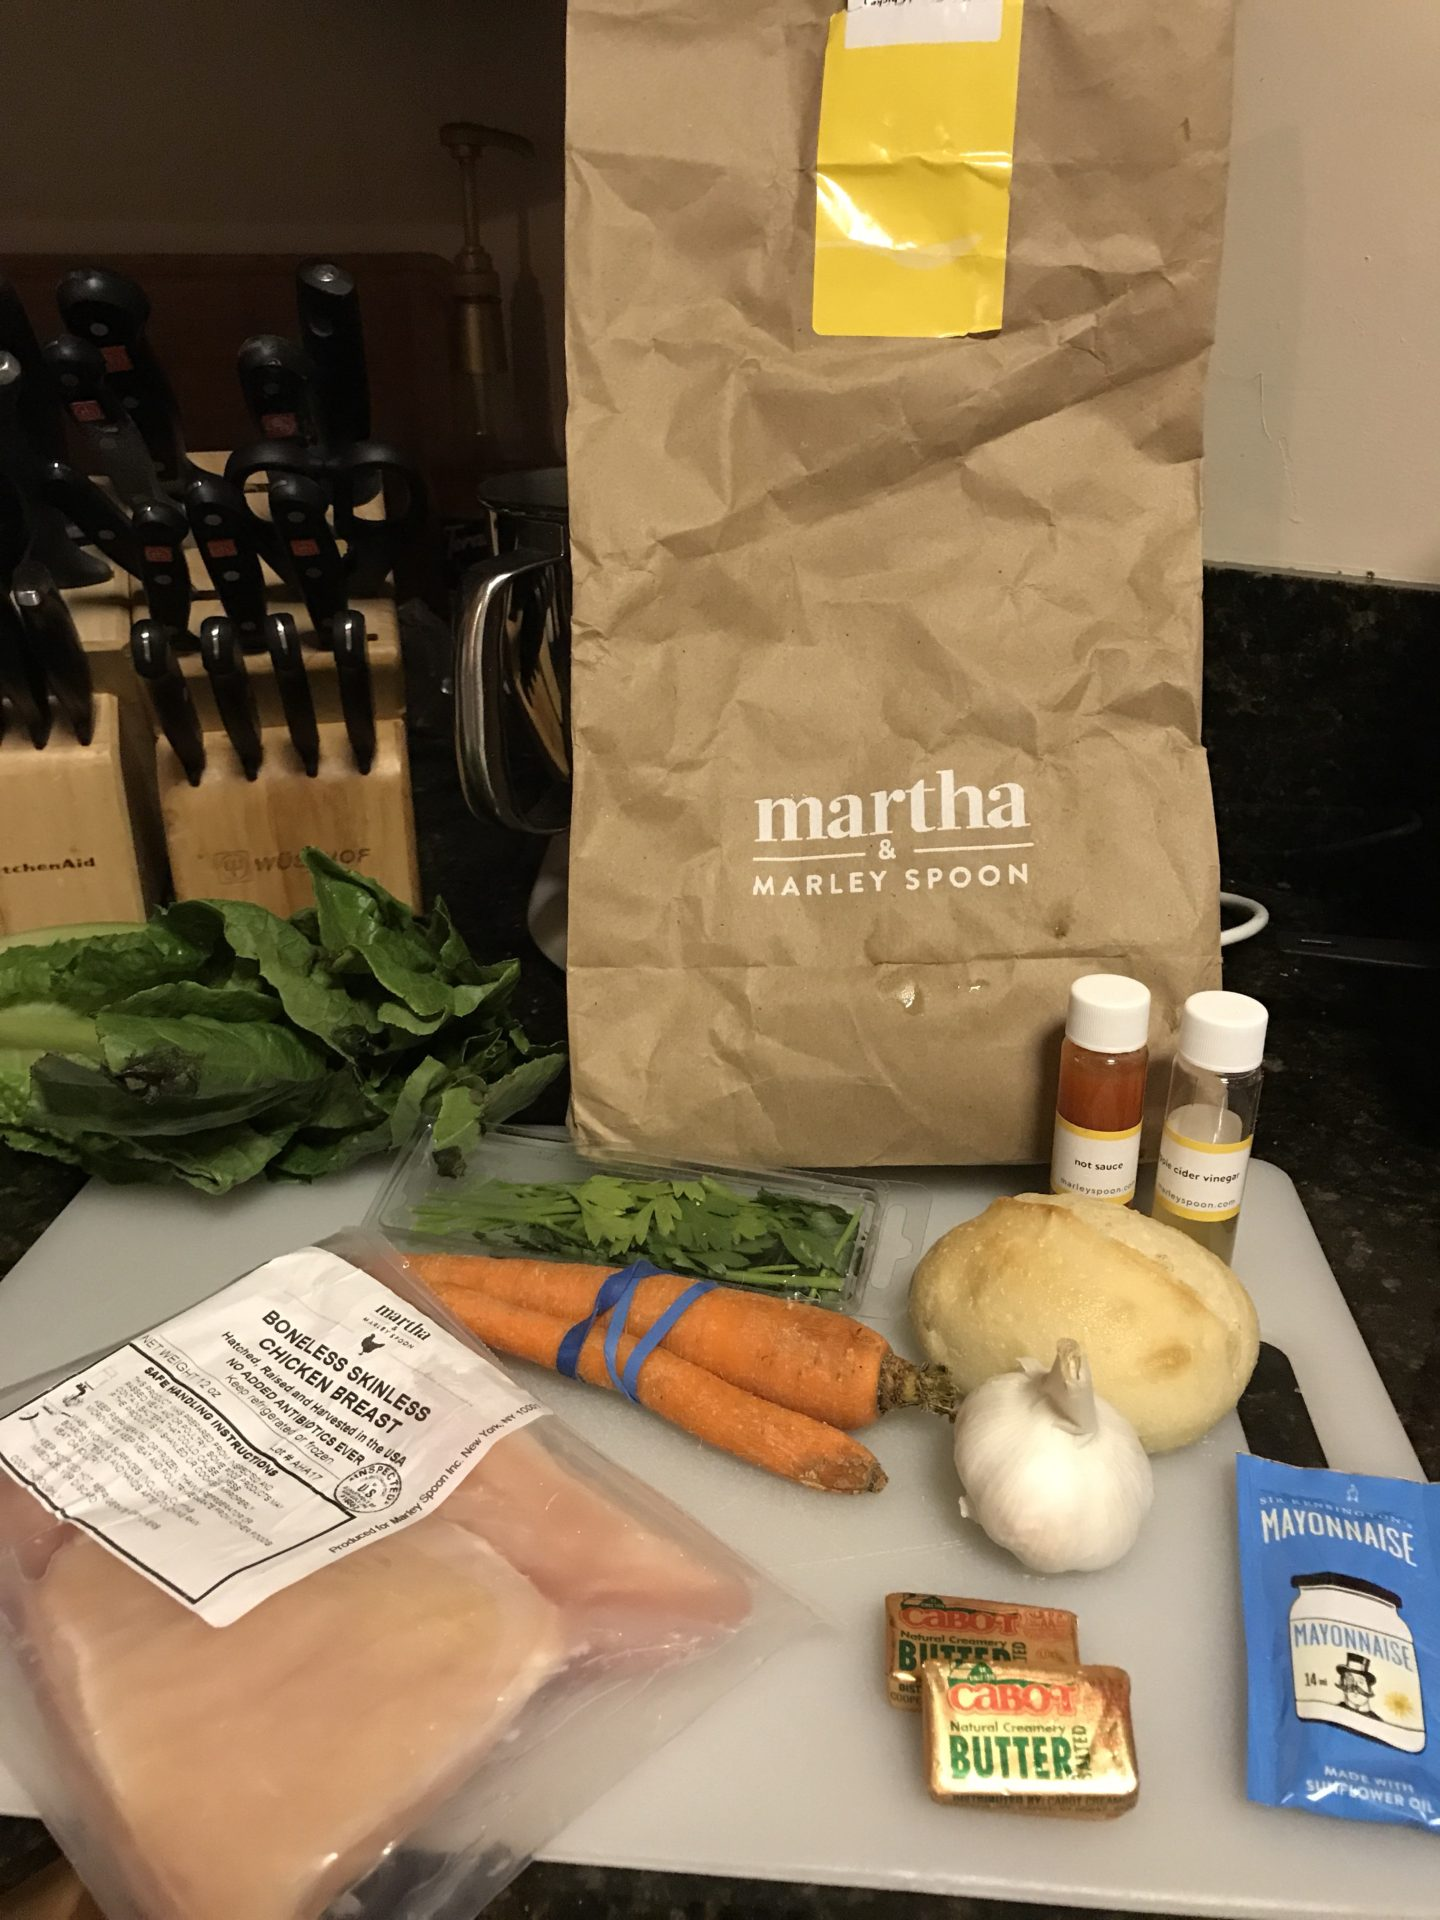 Not enough time in the day to make a delicious homemade meal after work? Check out my Marley Spoon Review for some great reasons why you should sign up for a meal prep service!